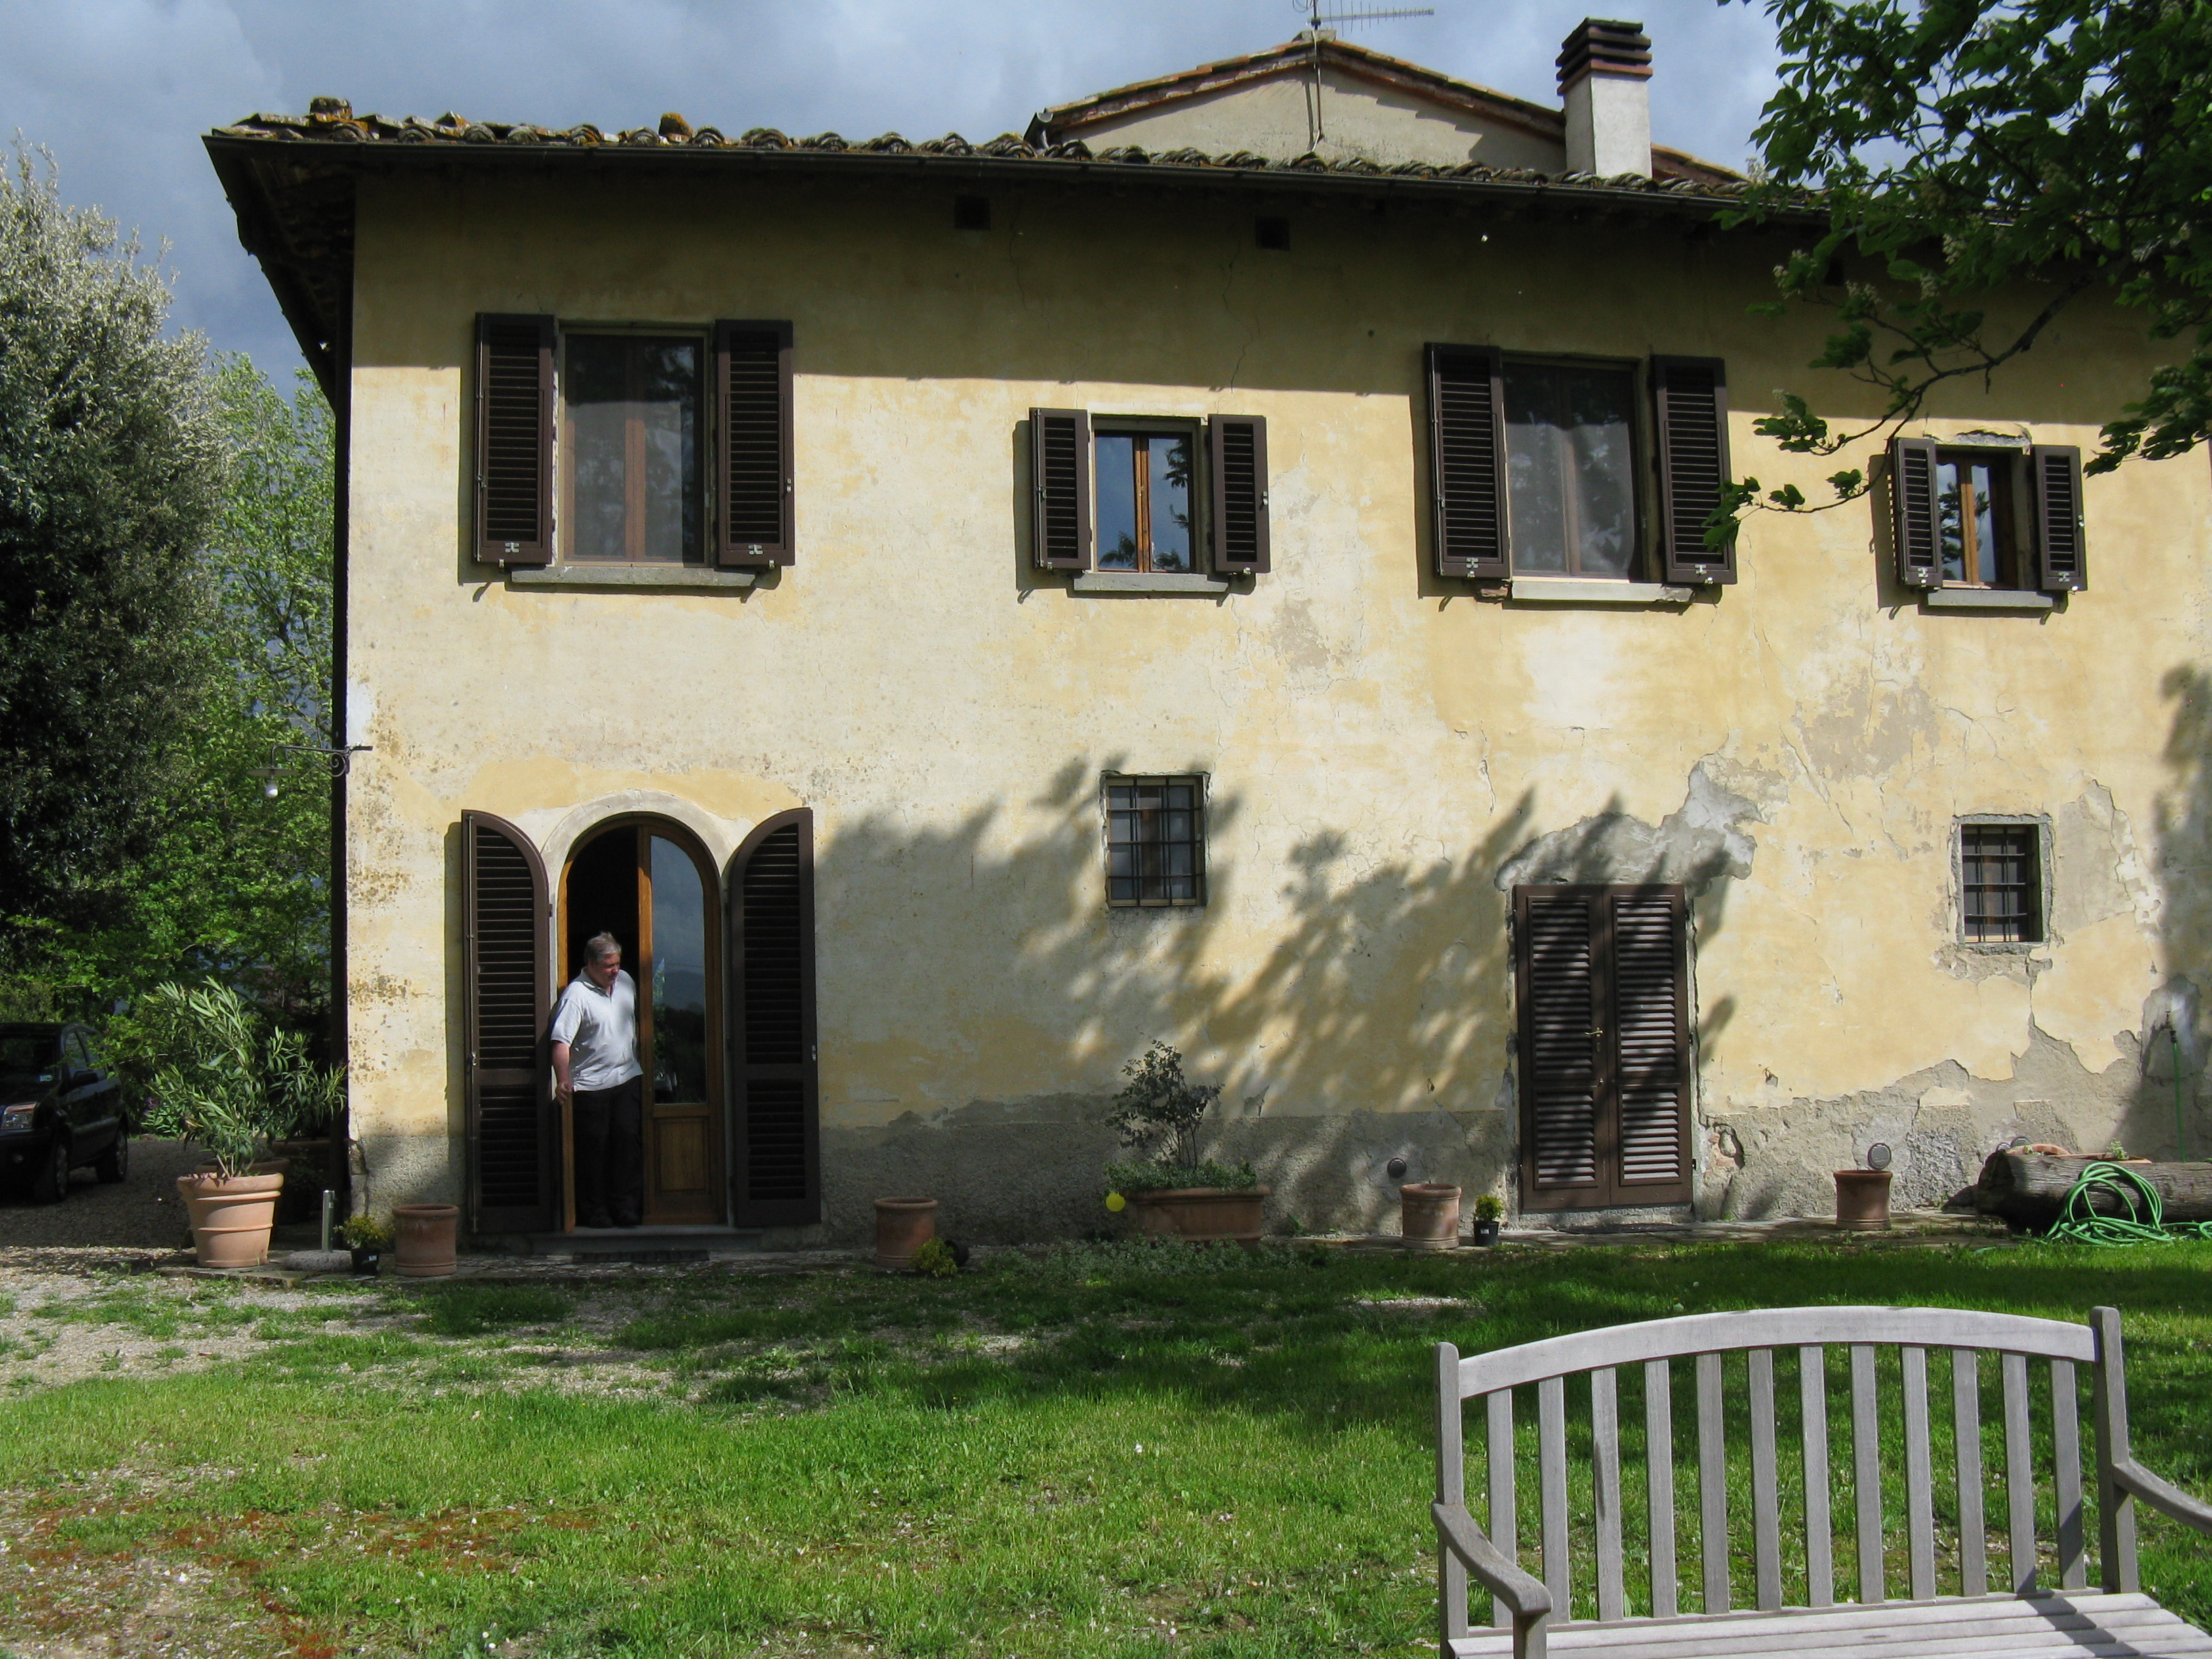 Rental villa in Tuscany